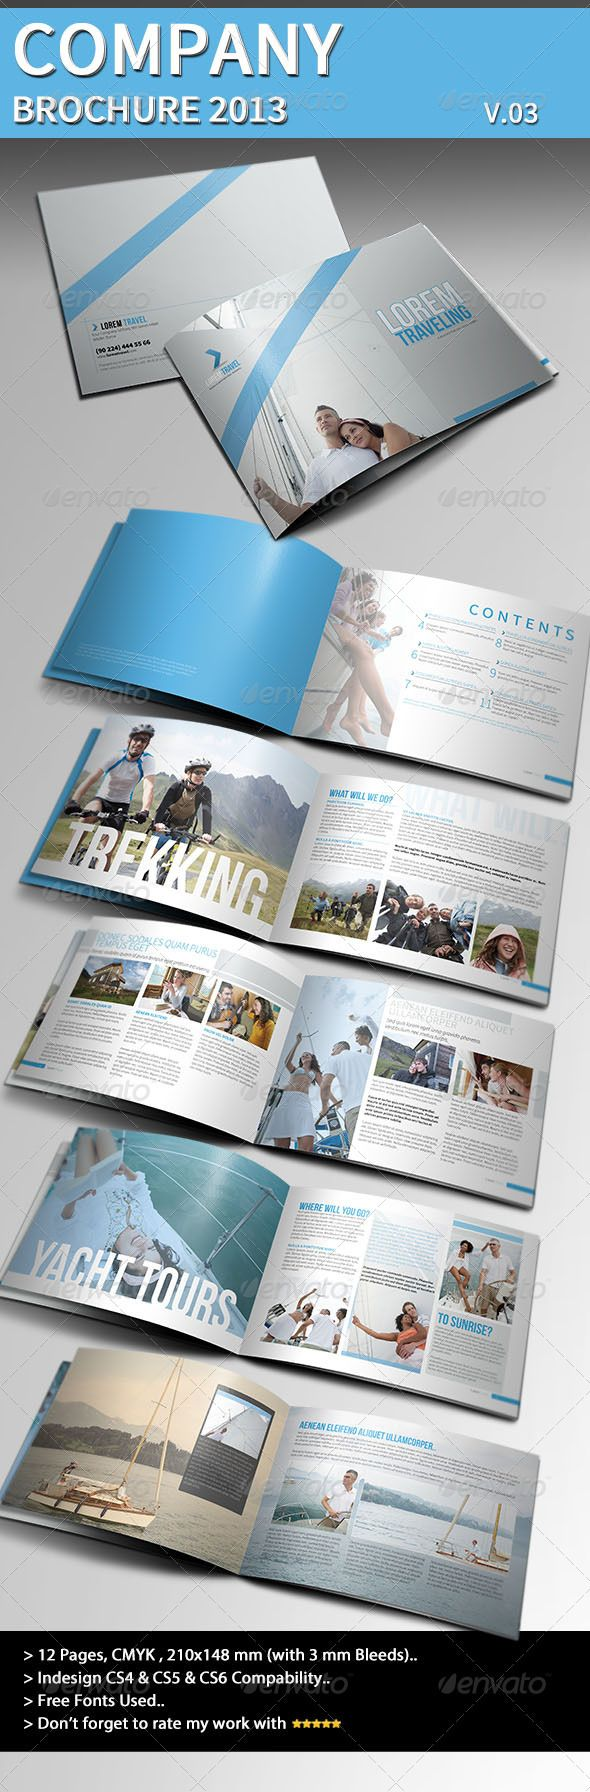 Company Brochure 2013 Part 03 - GraphicRiver Item for Sale